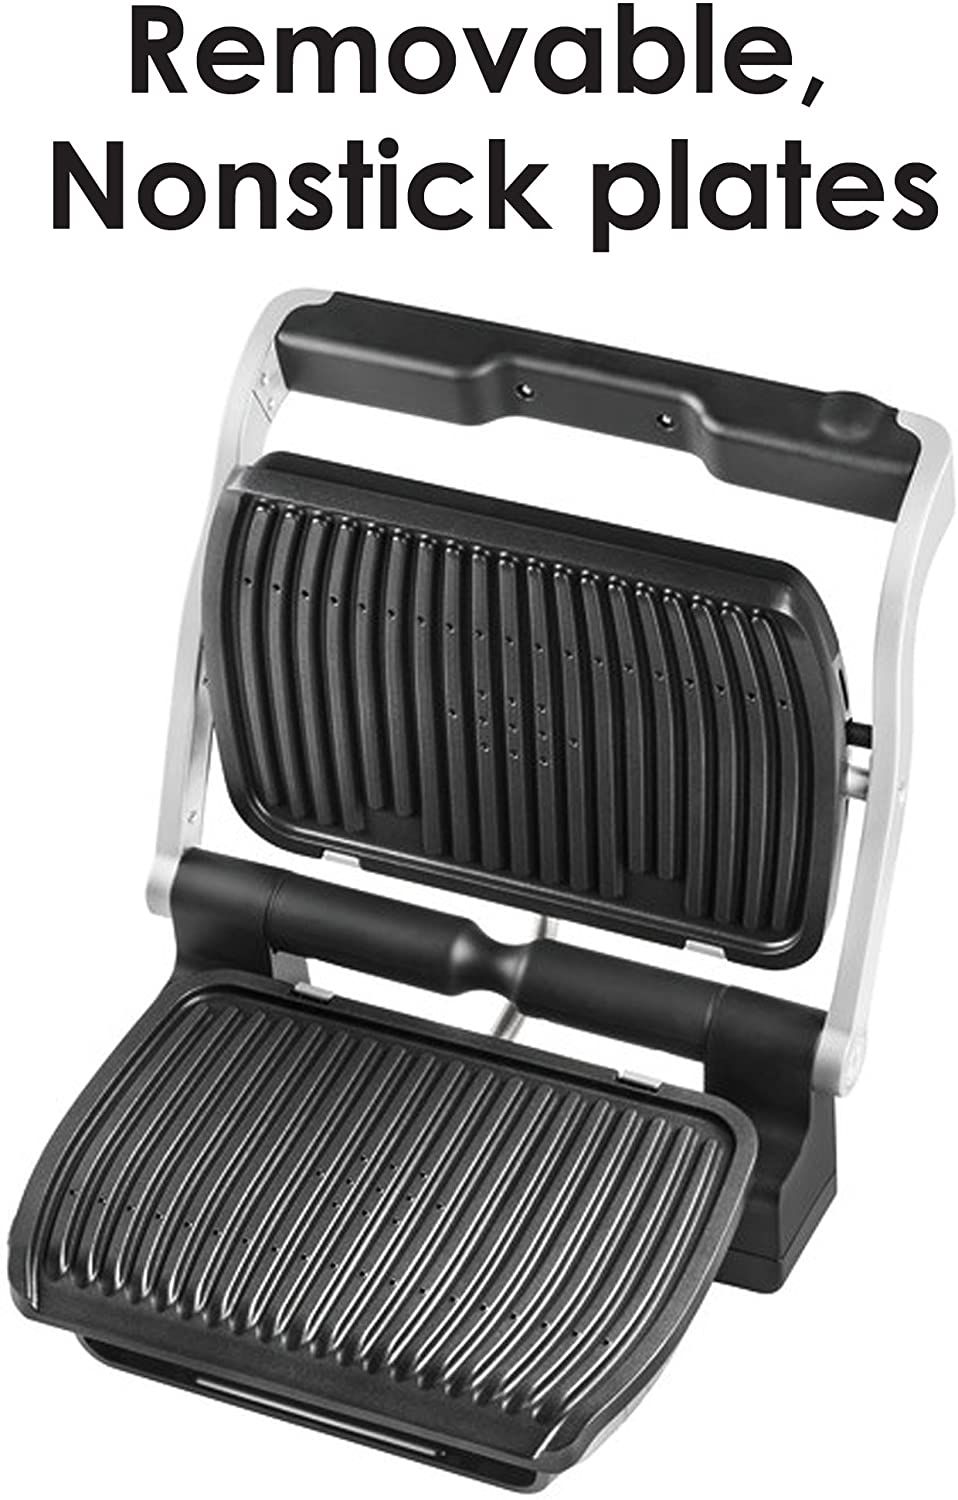 T-Fal GC7 Opti-Grill Indoor Electric Grill nonstick